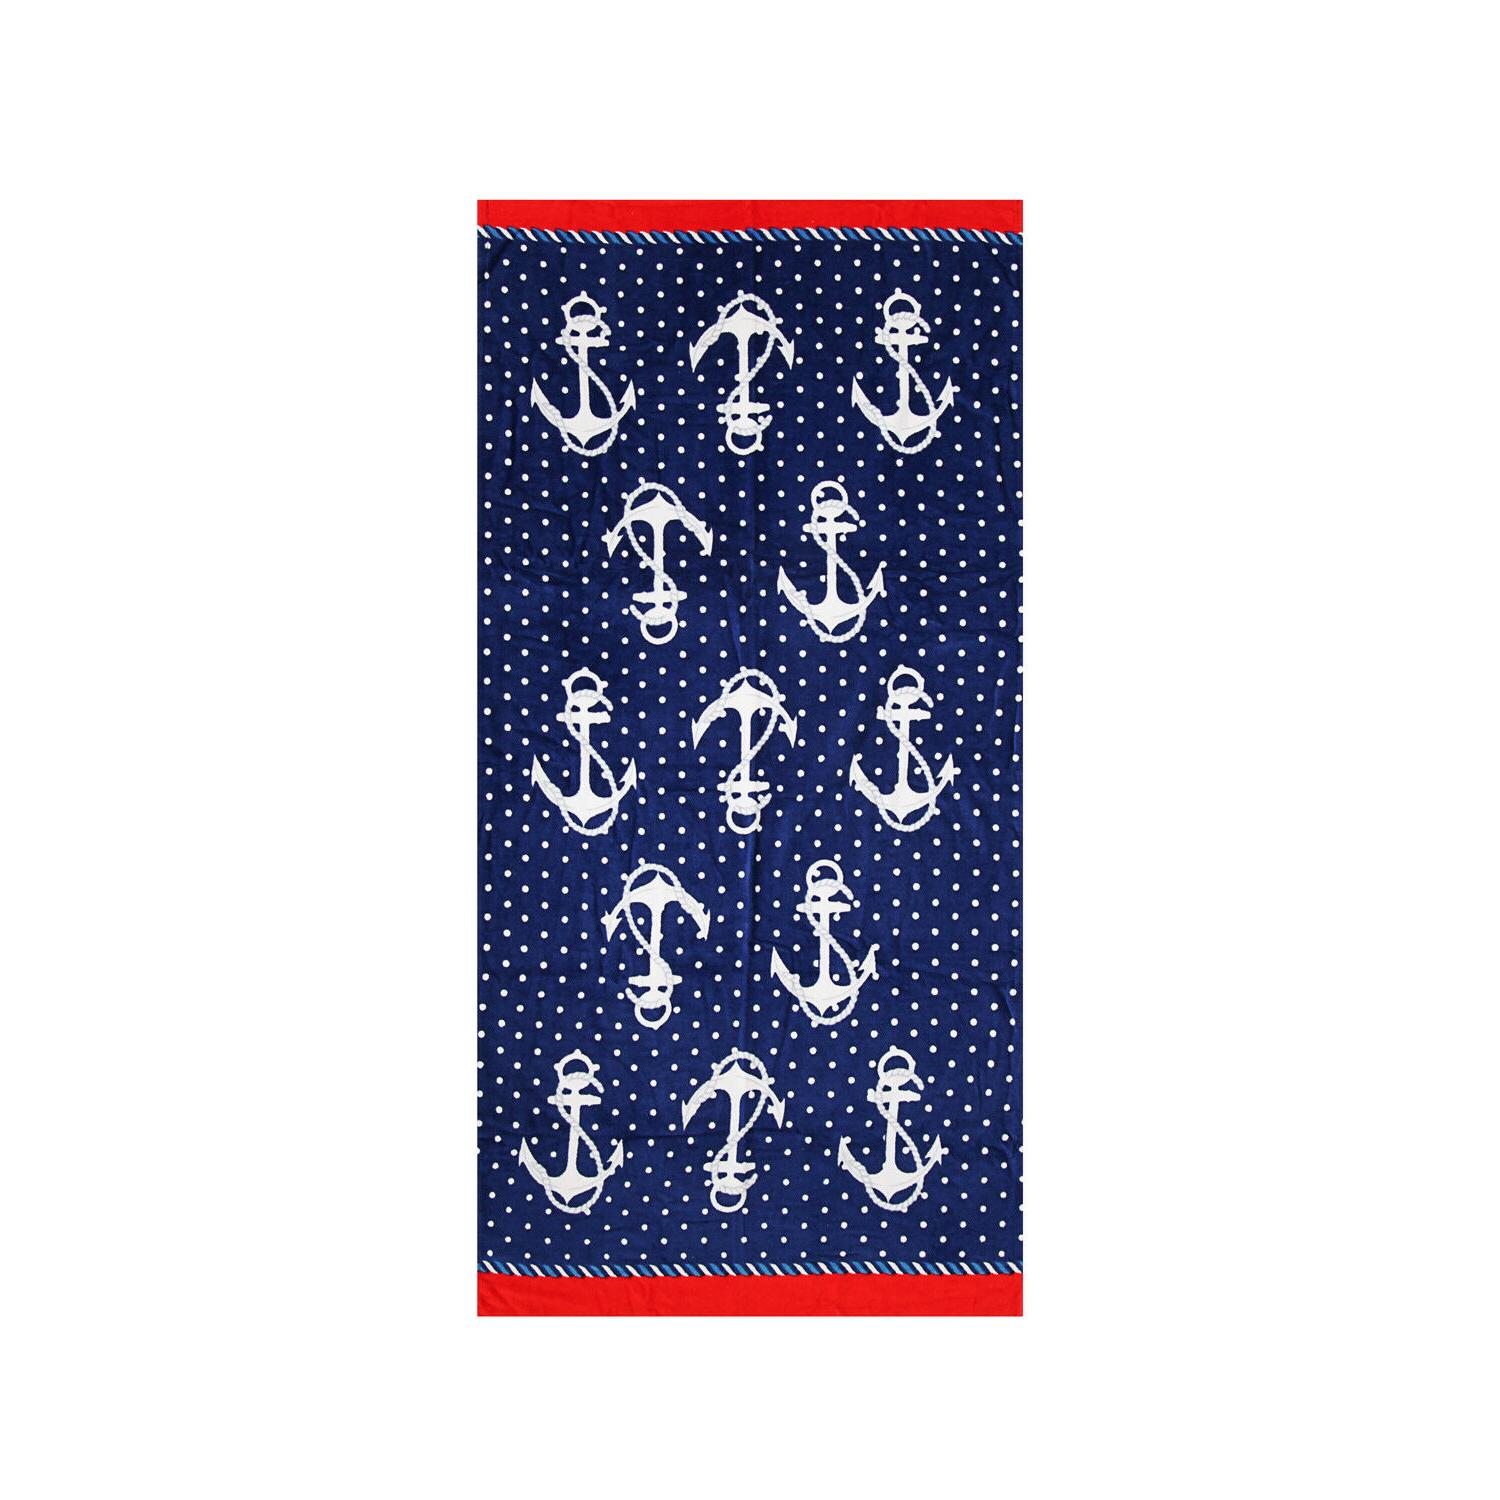 100% Turkish Beach Towels Soft Quick Dry Large Towels